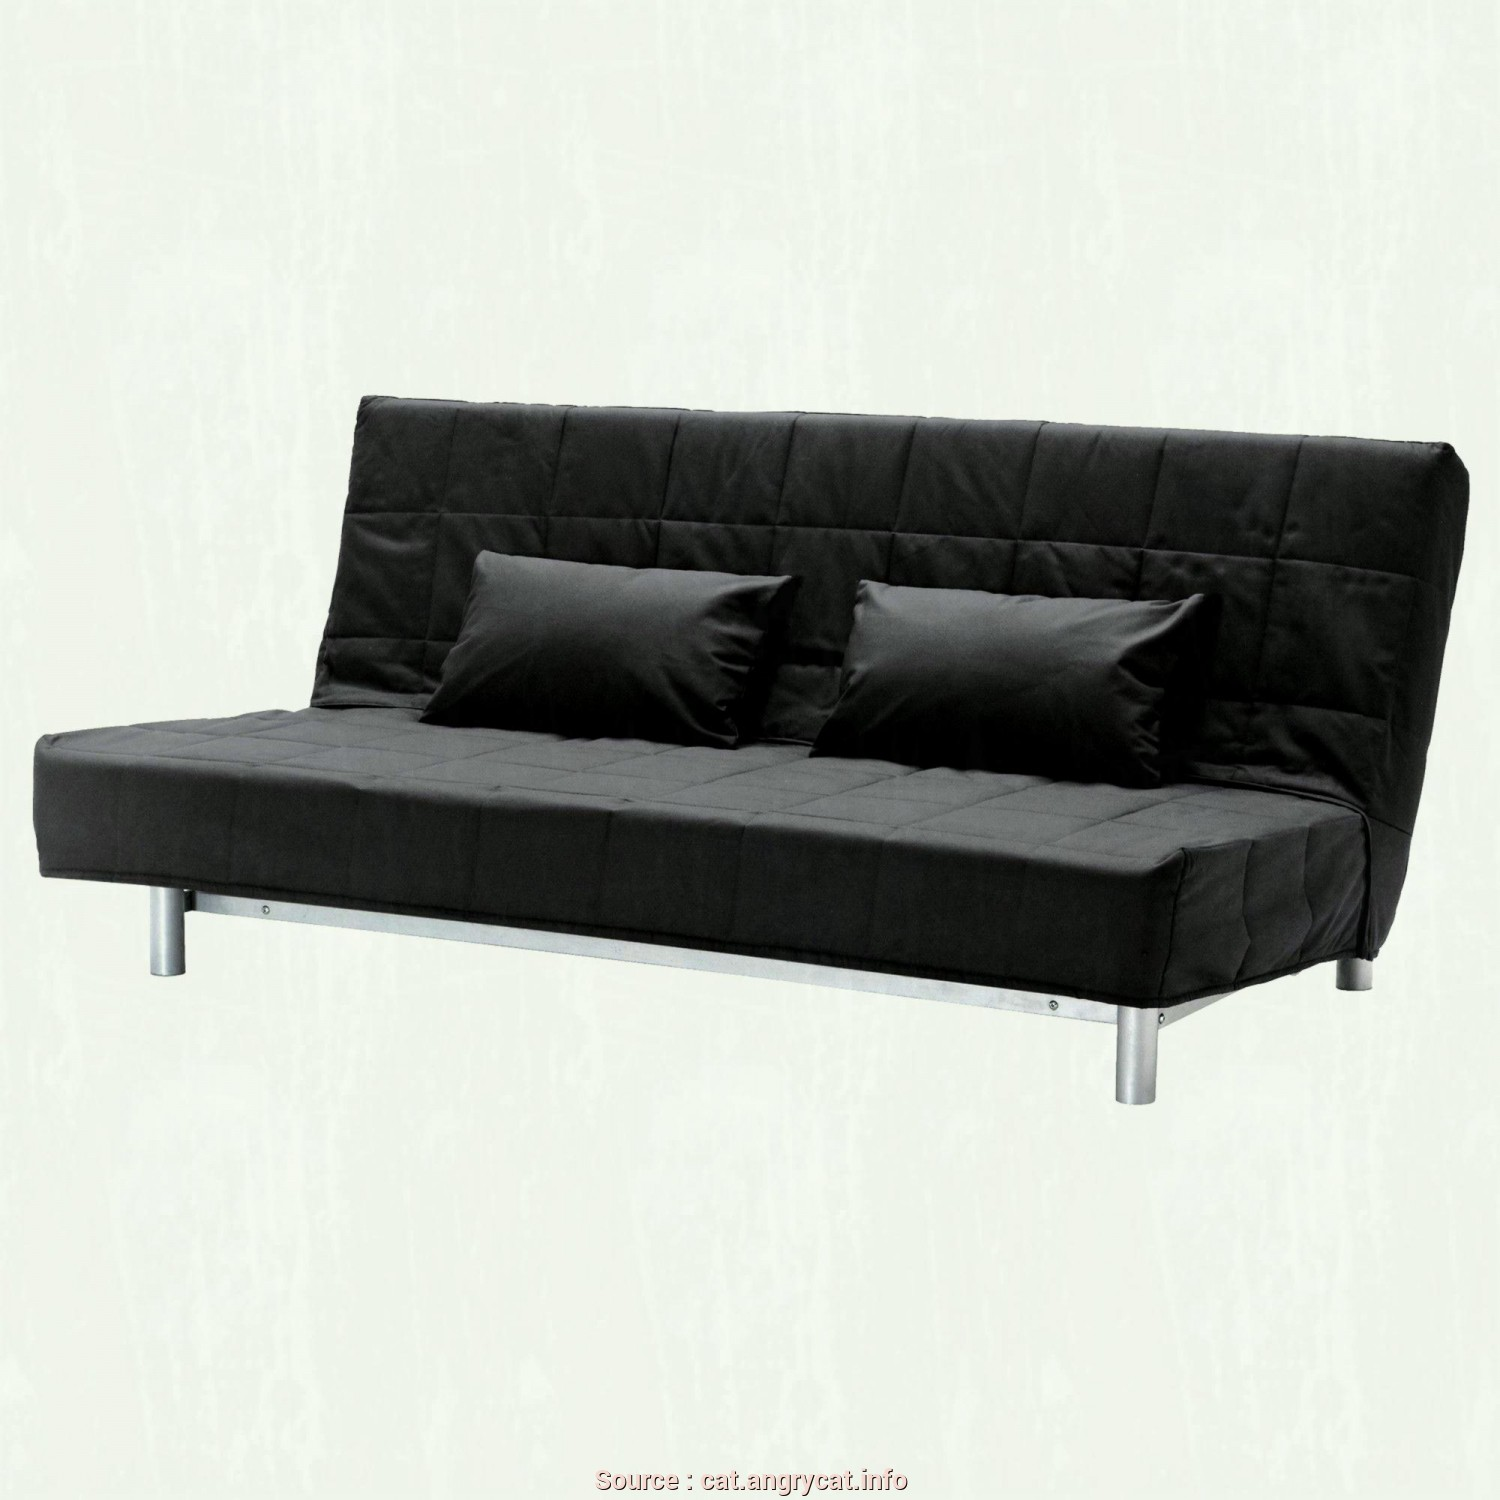 Asarum Ikea Recensioni, Migliore Futon Convertible Ikea Beautiful Beddinge, S Three Seat Sofa, Ransta Dark Grey Of Chair Perfect